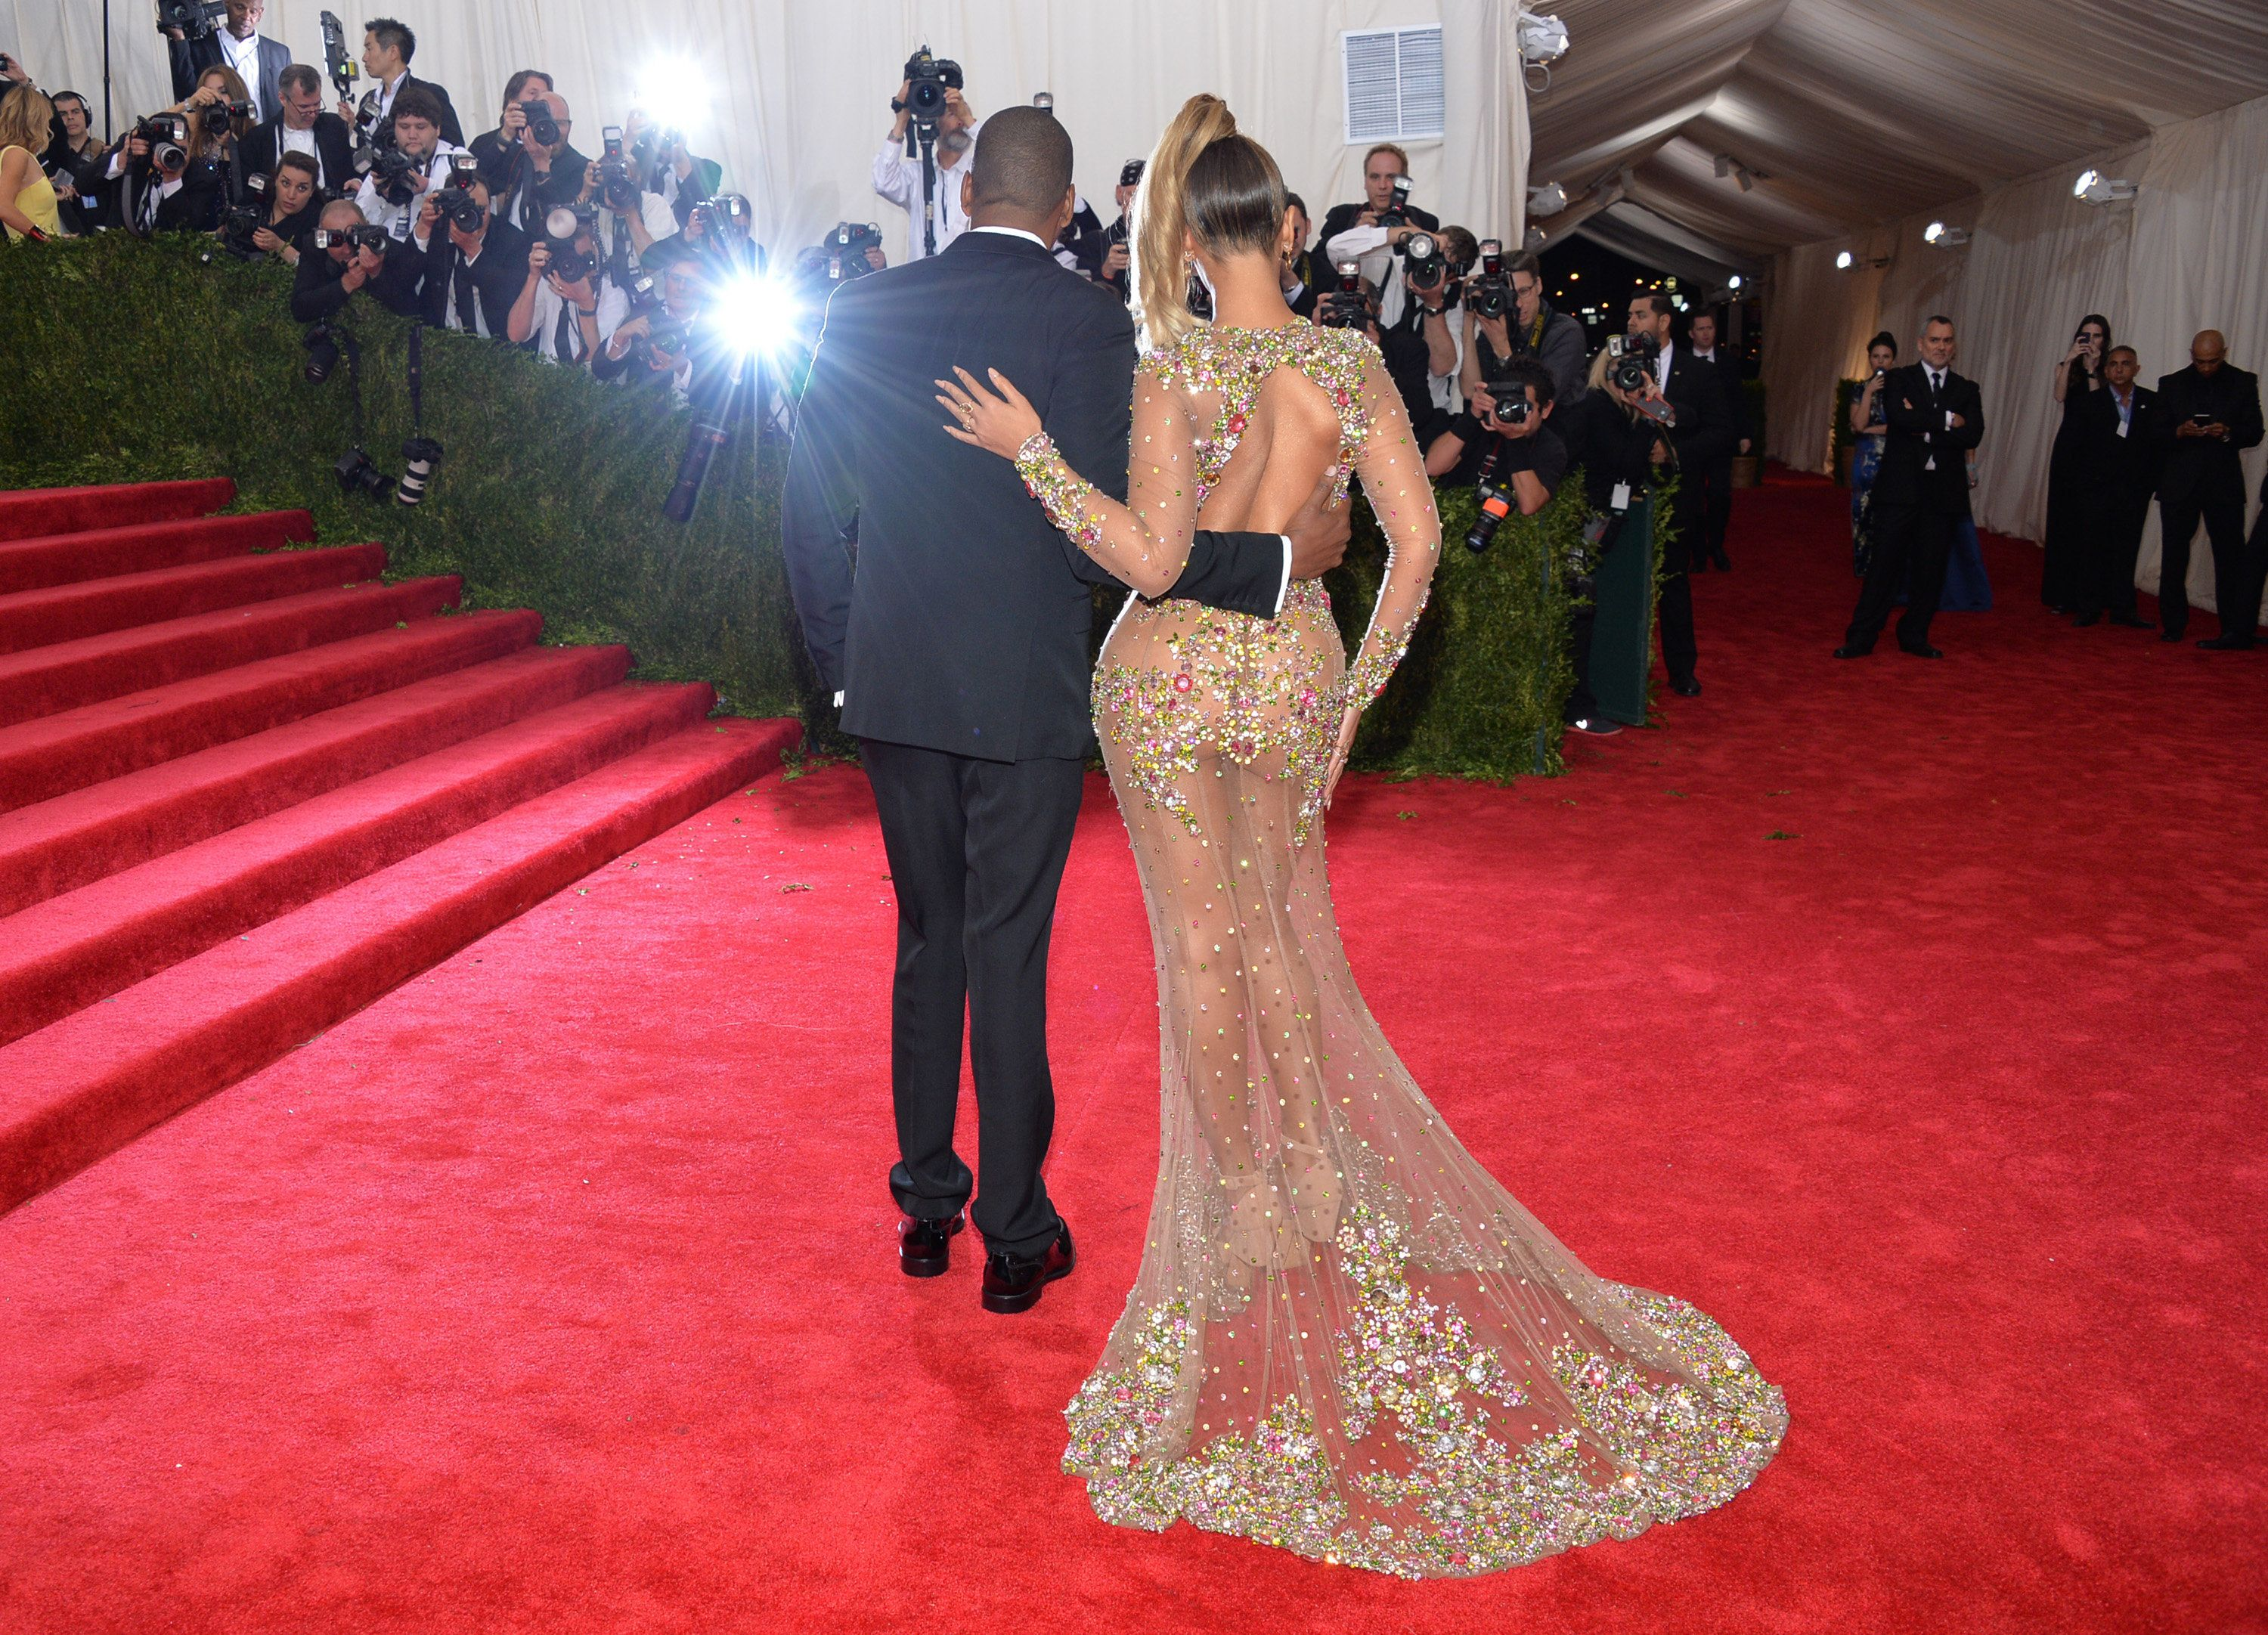 """Jay-Z, left, and Beyonce arrivesat The Metropolitan Museum of Art's Costume Institute benefit gala celebrating """"China: Through the Looking Glass"""" on Monday, May 4, 2015, in New York. (Photo by Evan Agostini/Invision/AP)"""